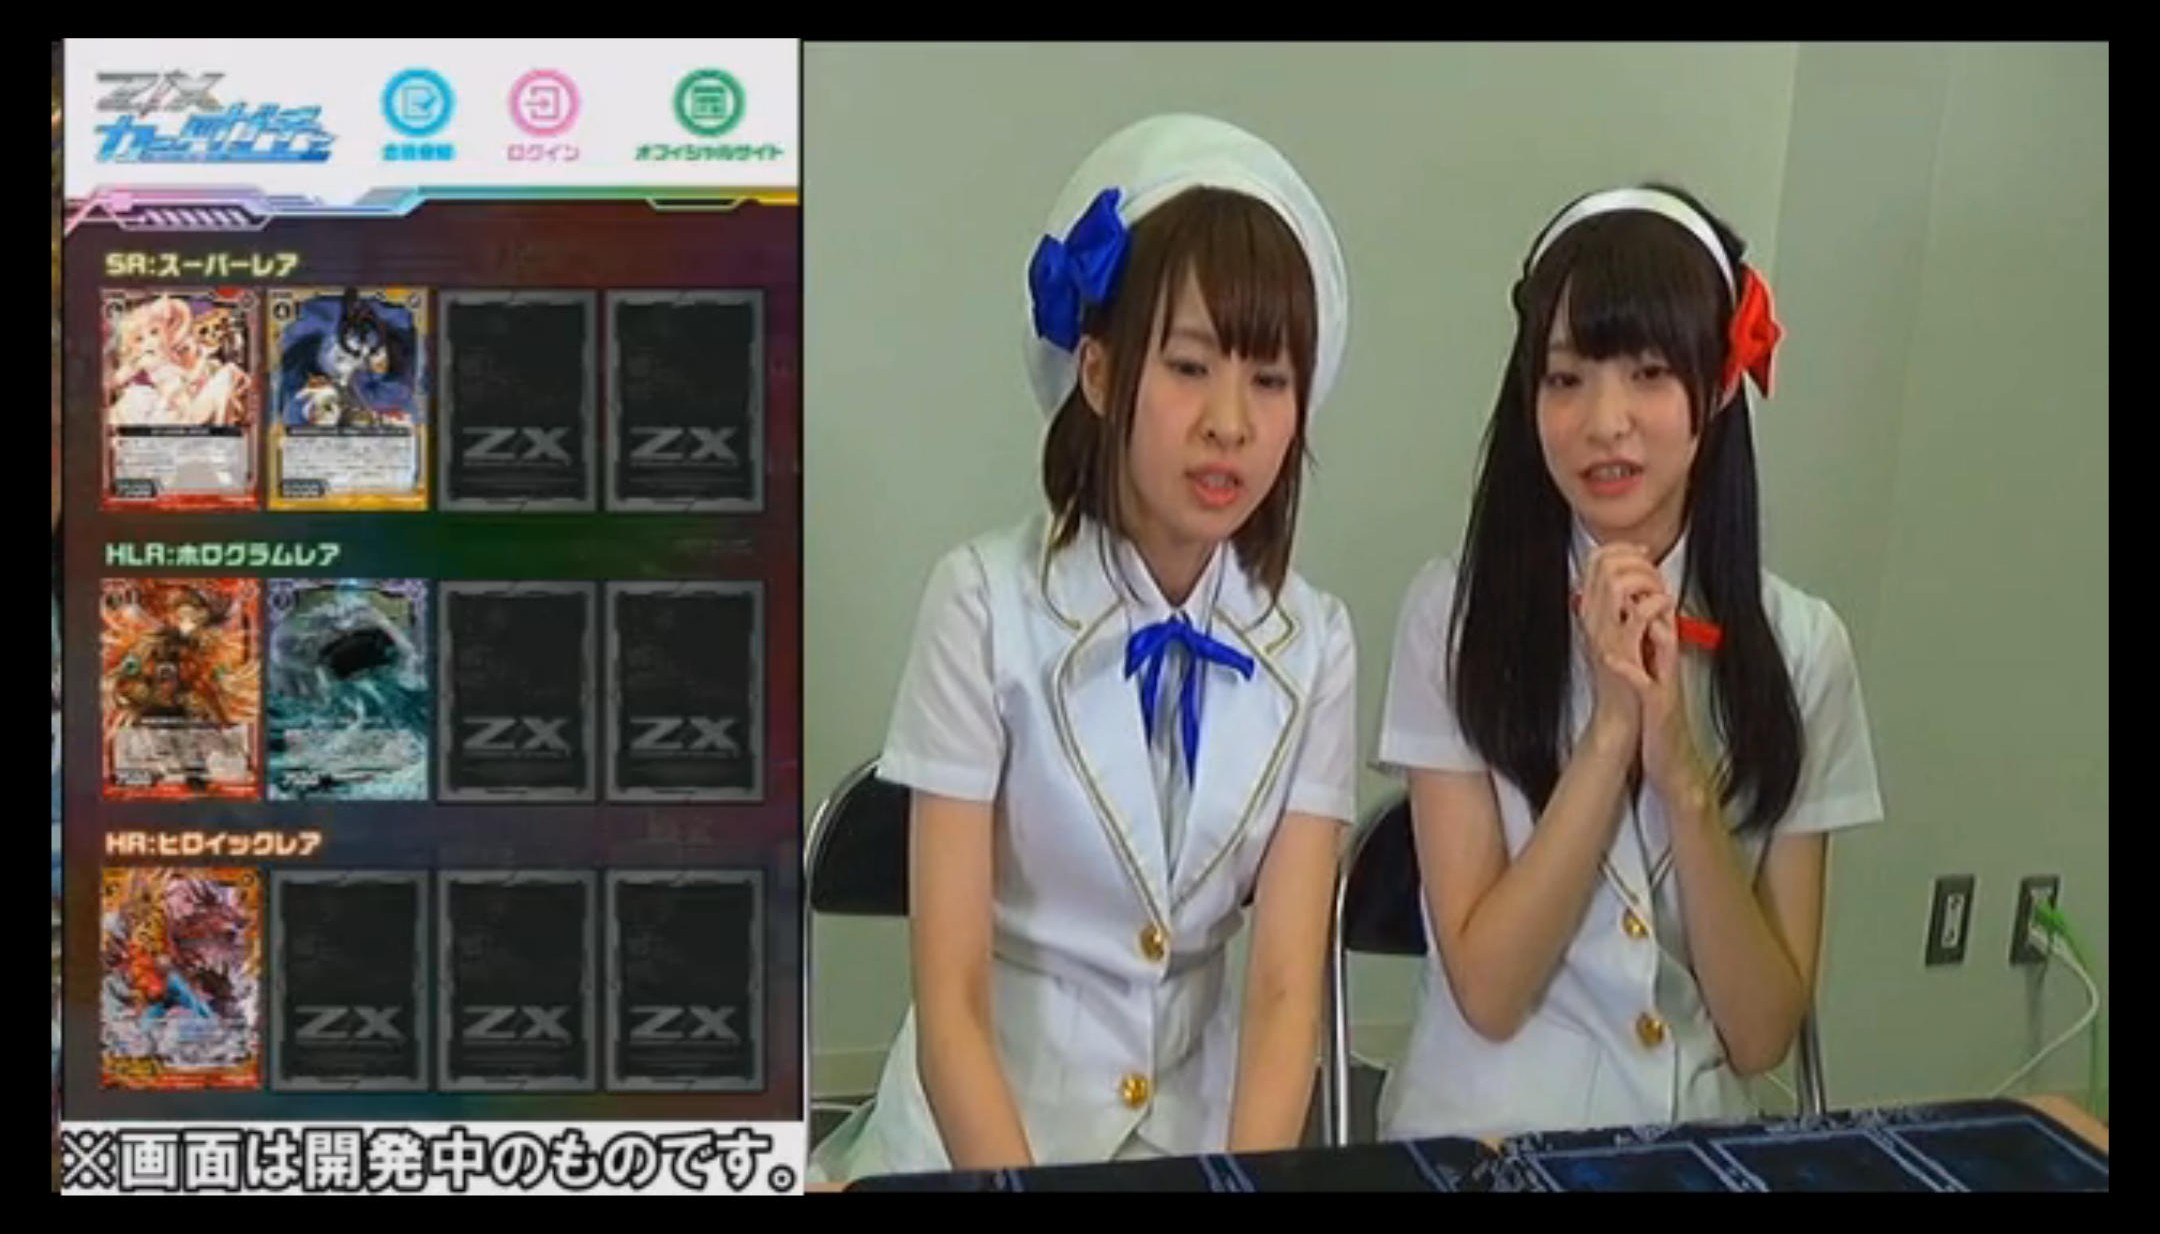 zx-ignition-broadcast-170712-051.jpg